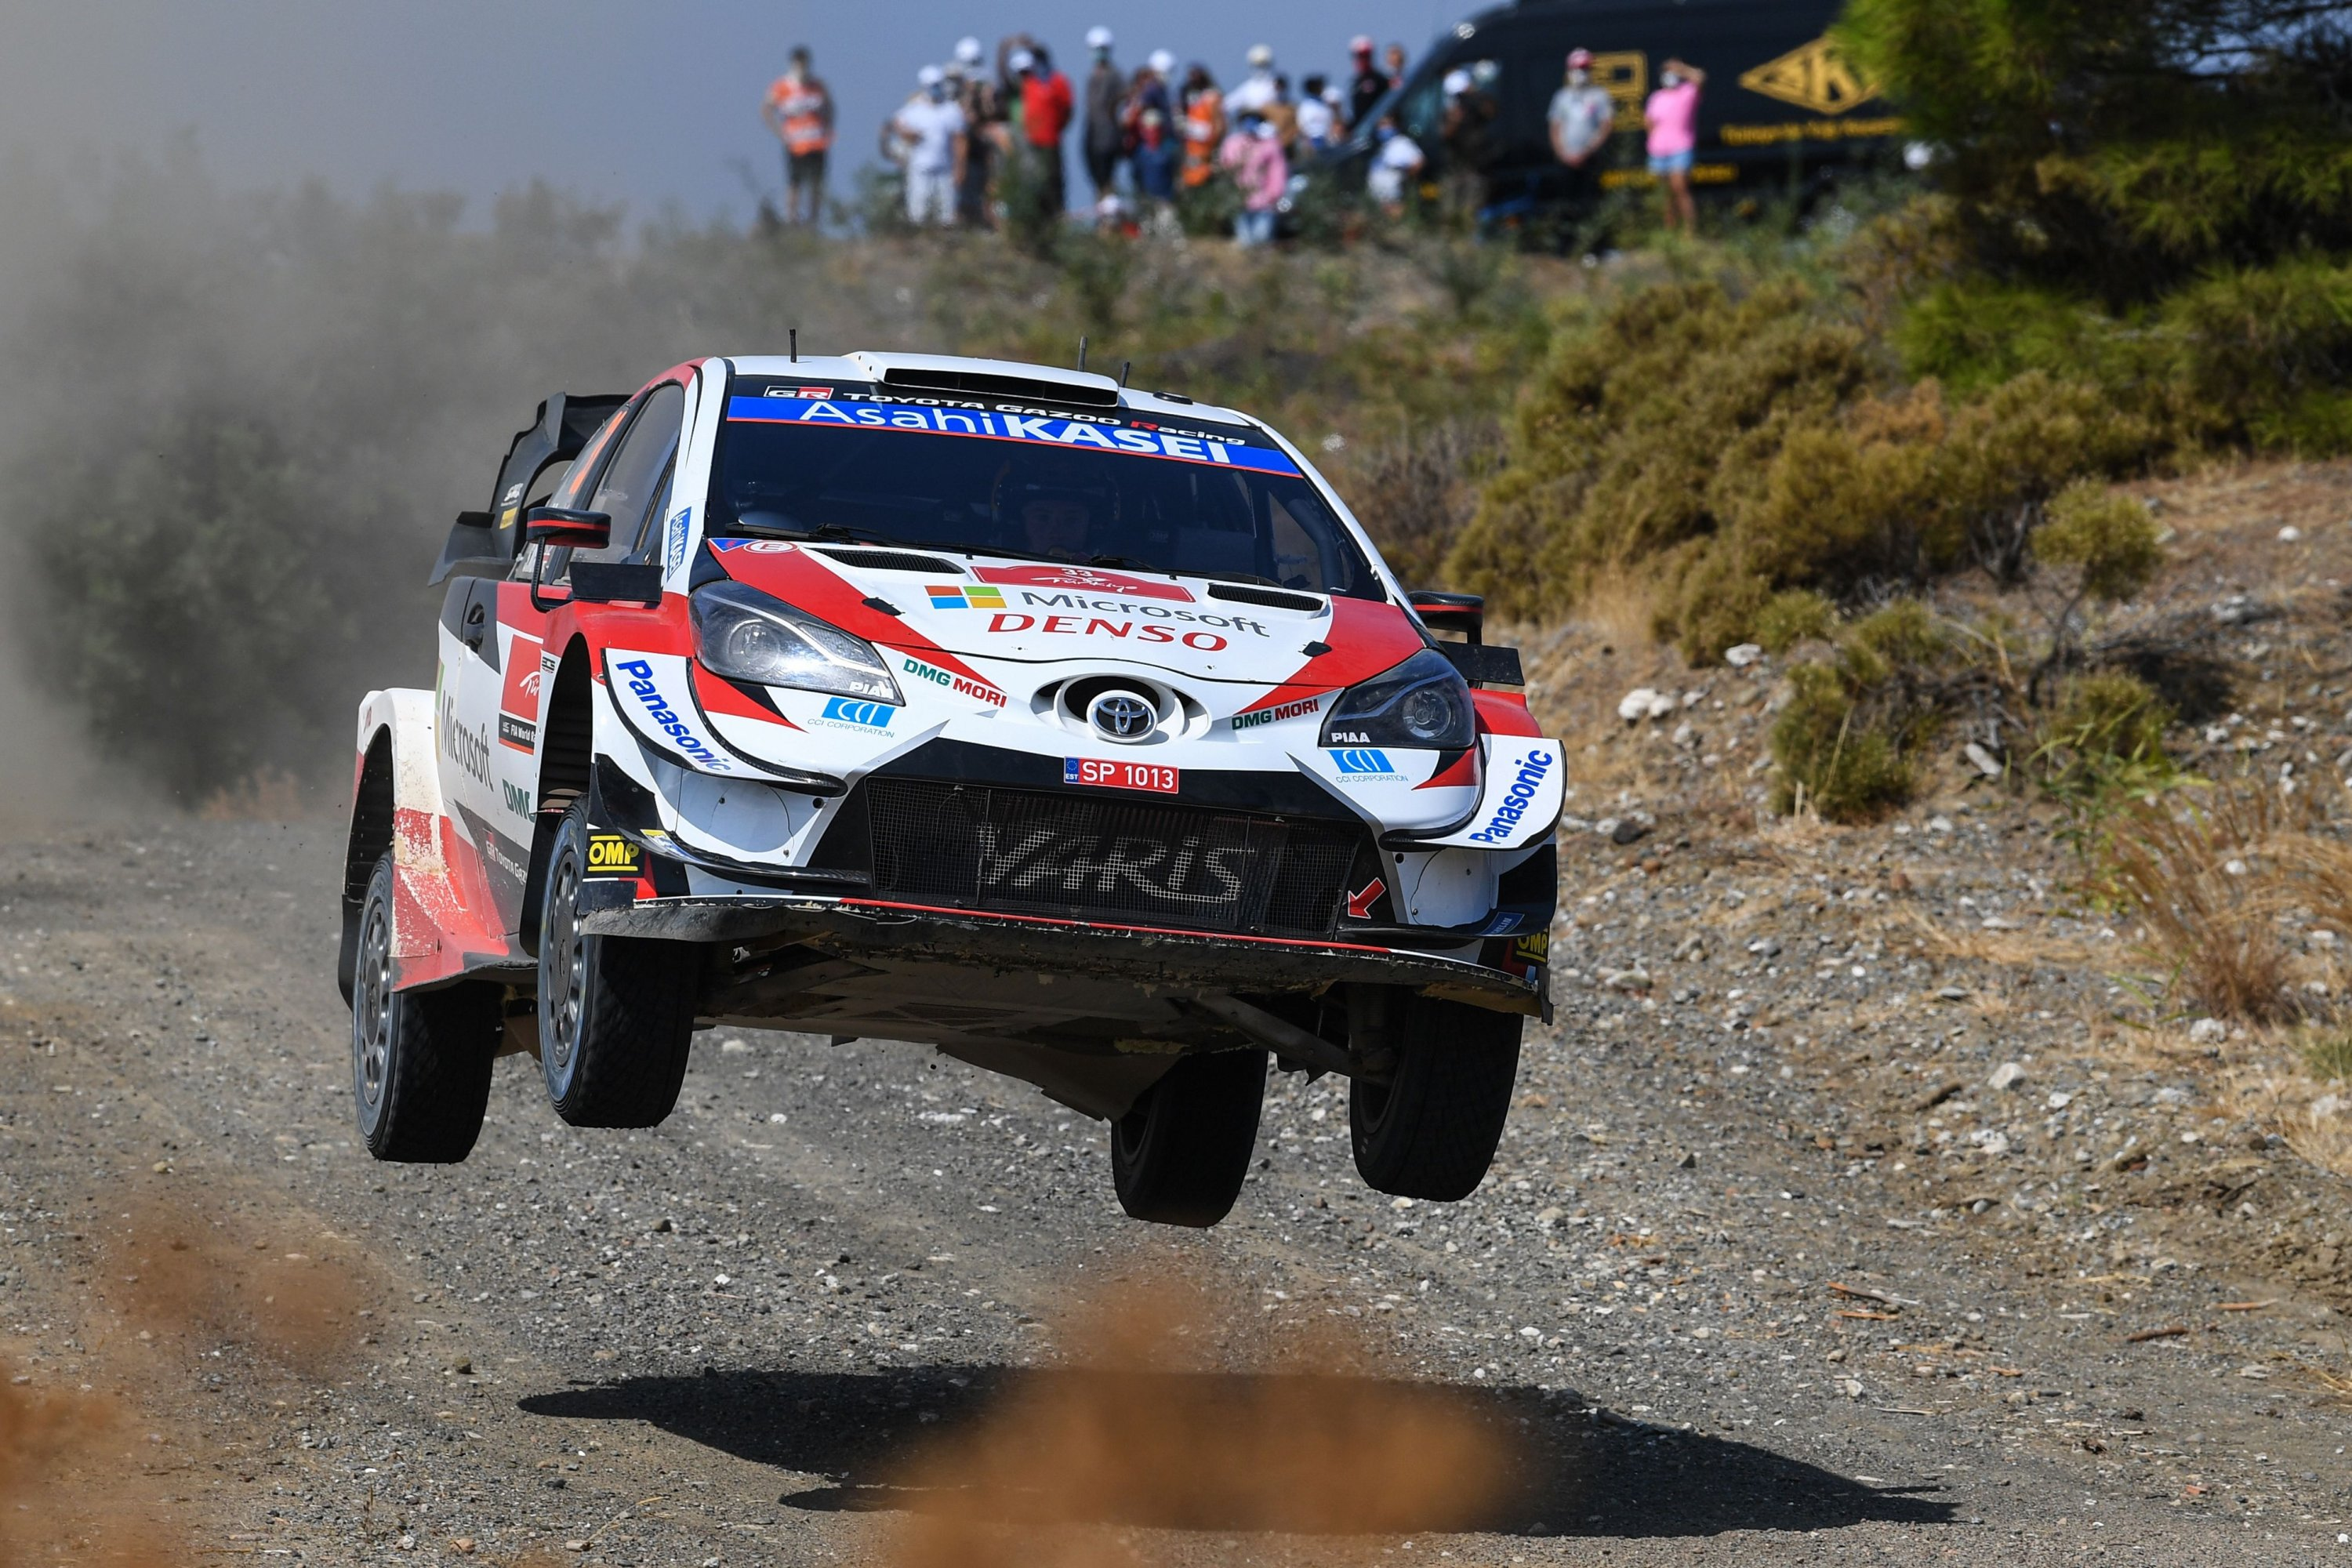 British pilot Elfyn Evans and co-driver Scott Martin steer their Toyota Yaris WRC racing car during the Kizlan stage on the second day of the Turkish WRC rally in Muğla, Turkey,  Sept. 20, 2020. (AFP Photo)